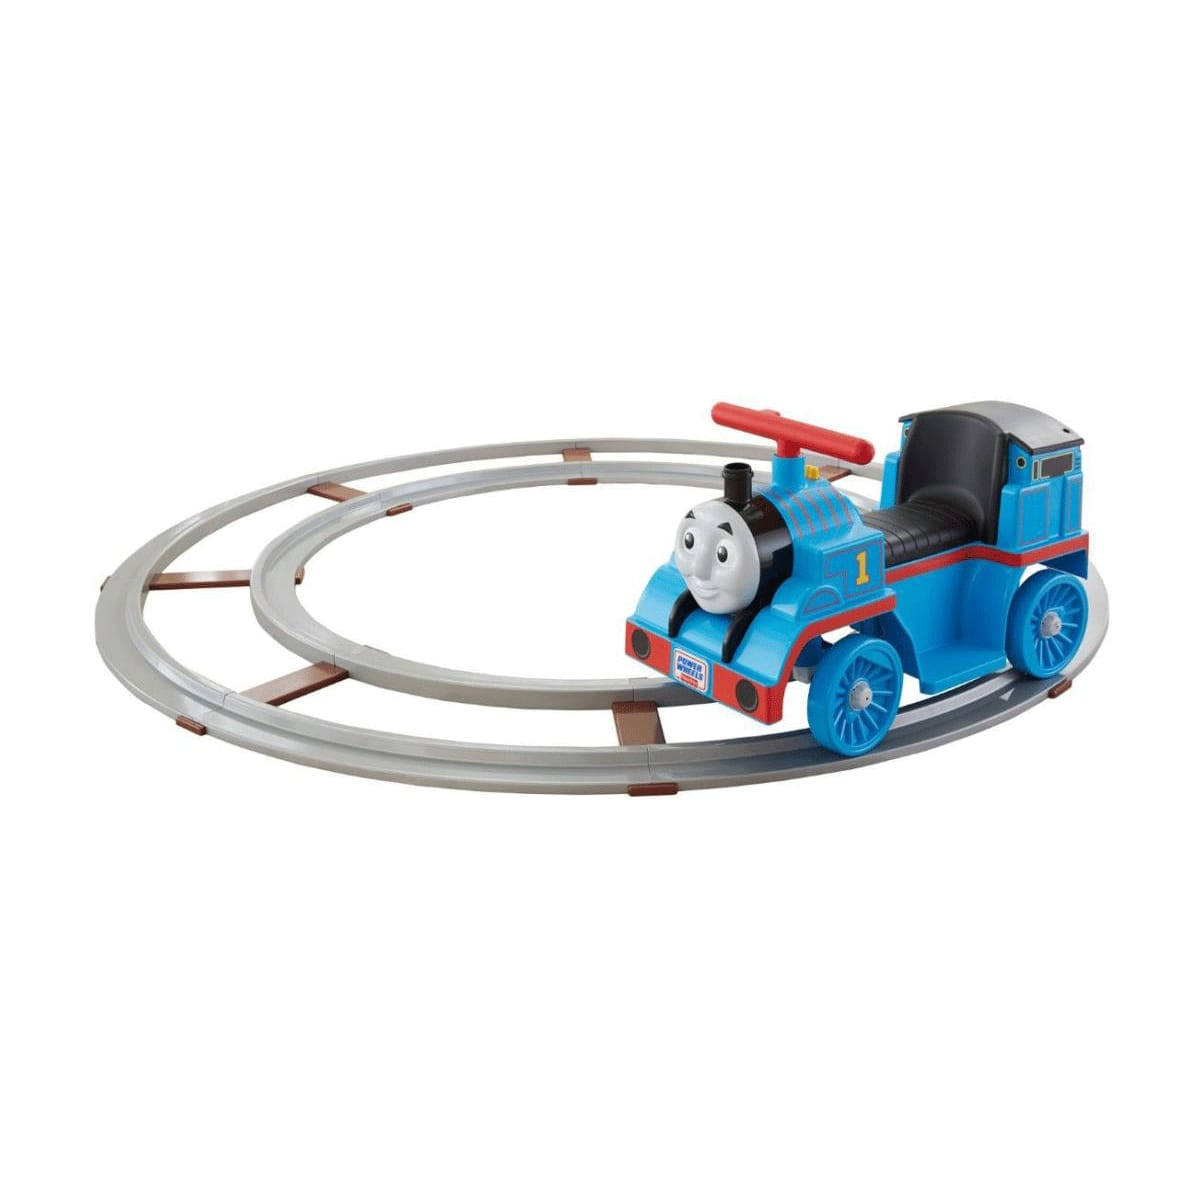 トーマストレイン 線路付電動電車 6Vバッテリー付 電動カー Fisher-Price Power Wheels Thomas the Train On Track 6-Volt Battery-Powered Ride-On